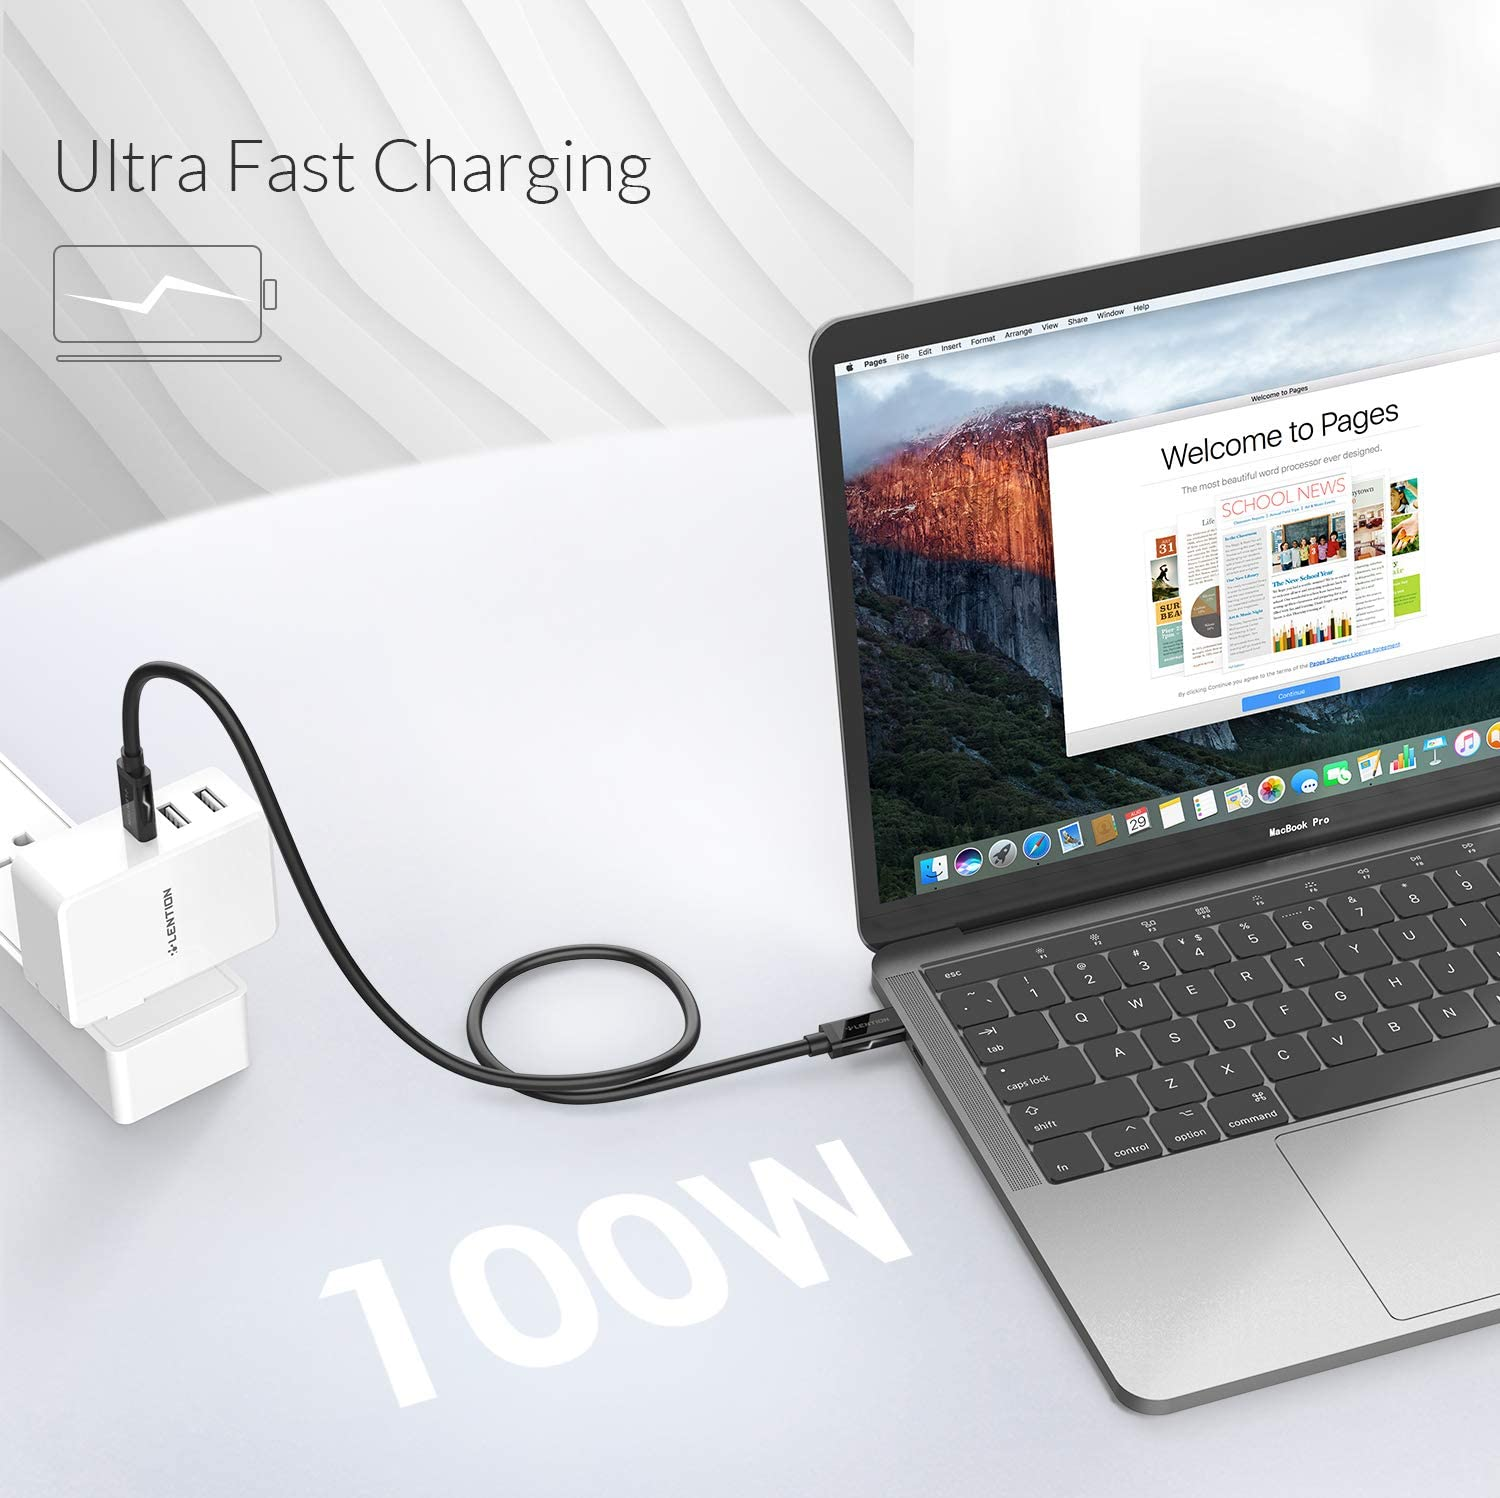 Black LENTION USB-C to USB-C 3.1 Gen 2 Cable More Type-C Devices iPad Pro 2018 2019 3ft with 4K//60Hz Video /& 100W Power Delivery Compatible MacBook Air//Pro Surface Book 2//Go Thunderbolt 3